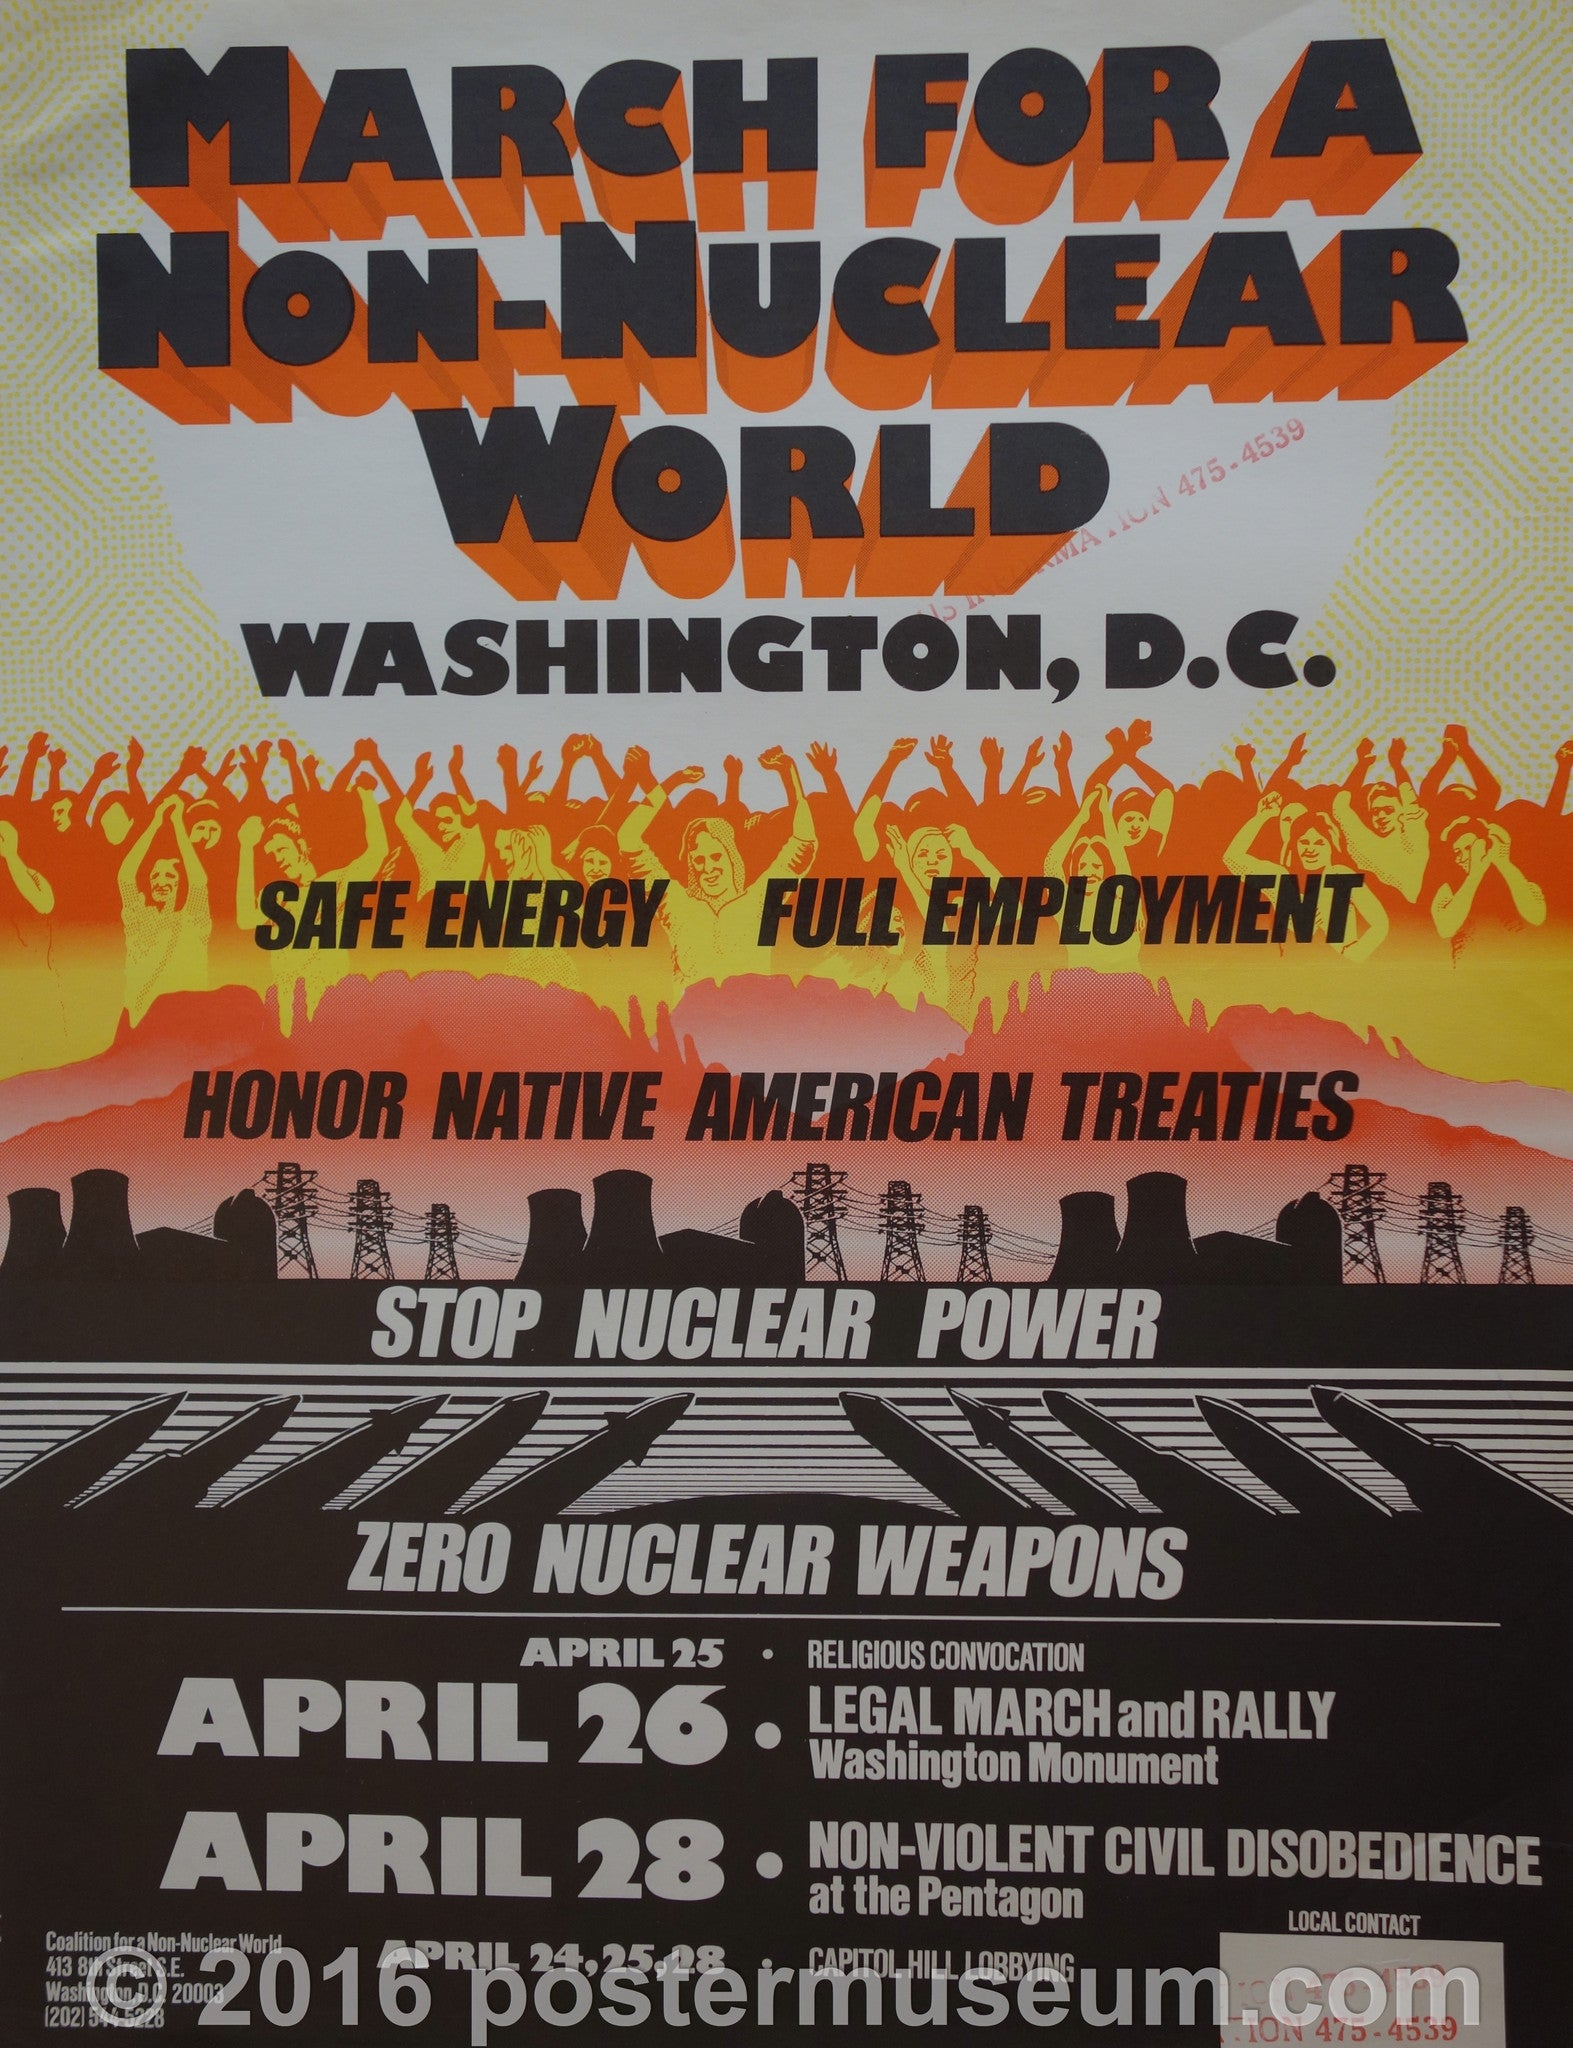 March for a non-nuclear world